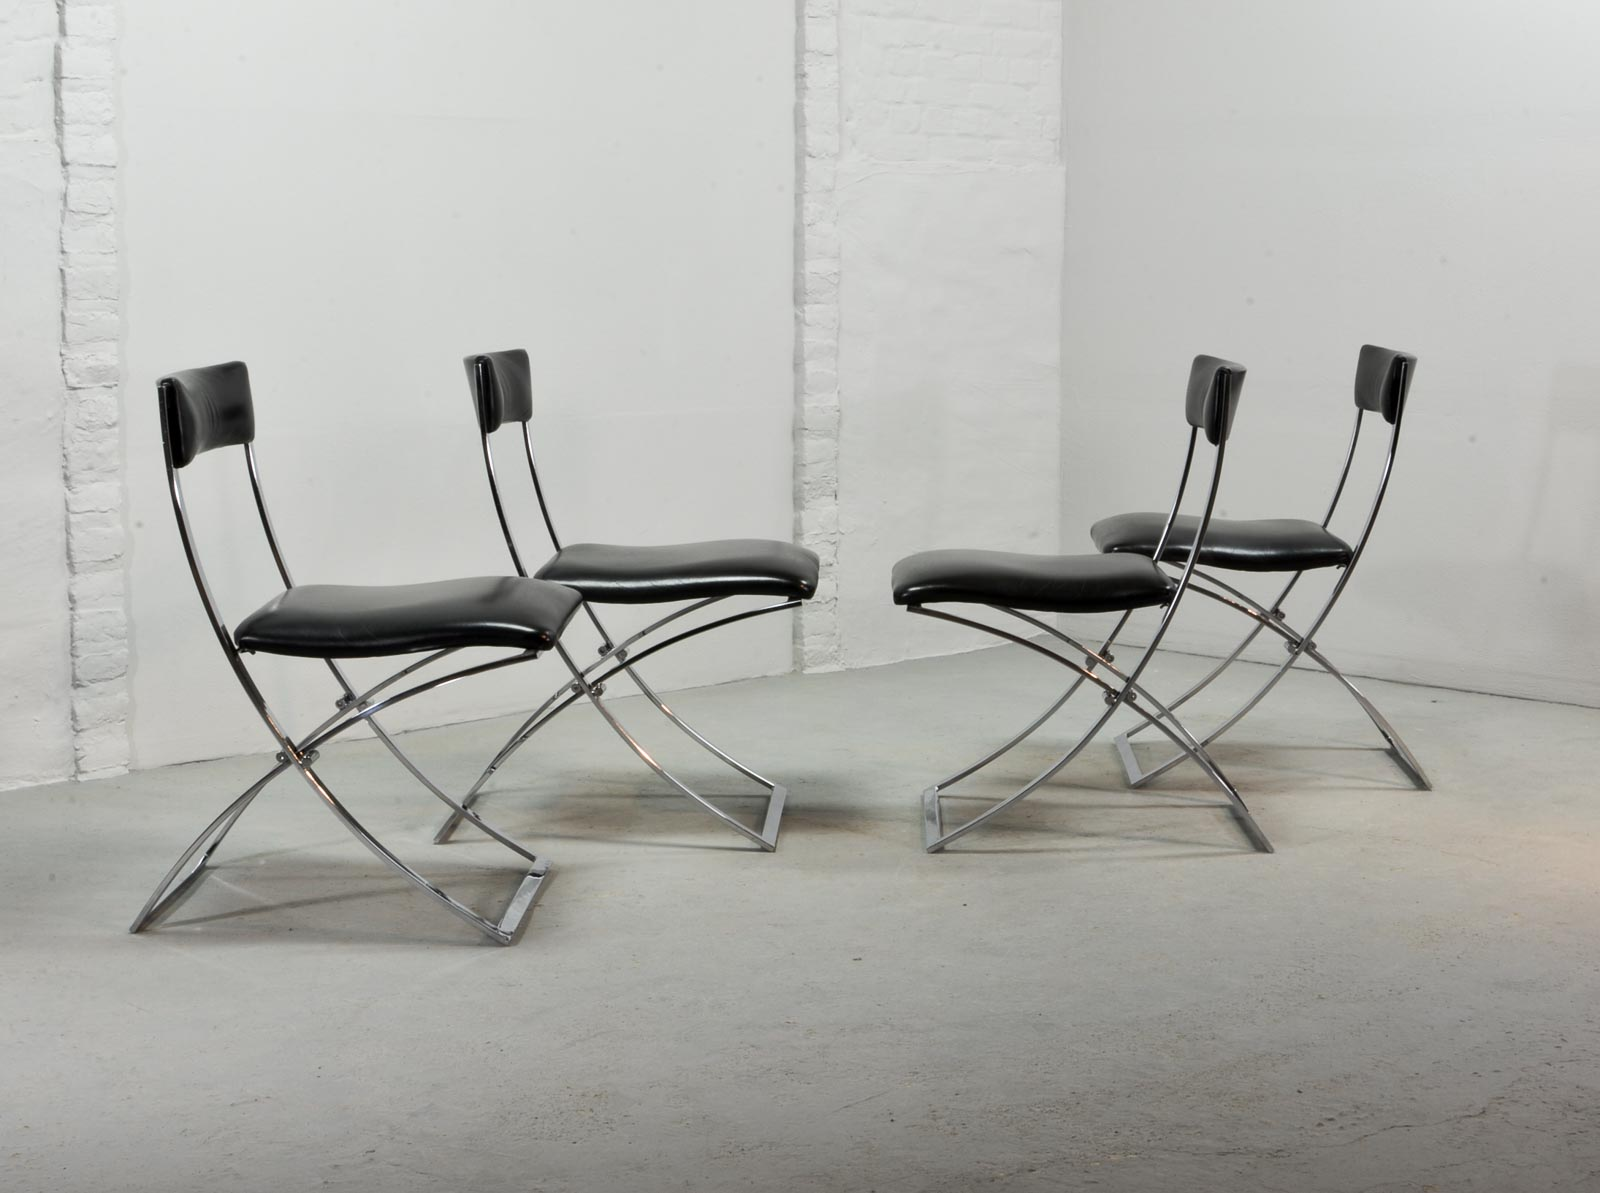 Superb Set Of Four Midcentury Foldable Chairs By Marcello Cuneo For Mobel  Italia Hpvintage.com